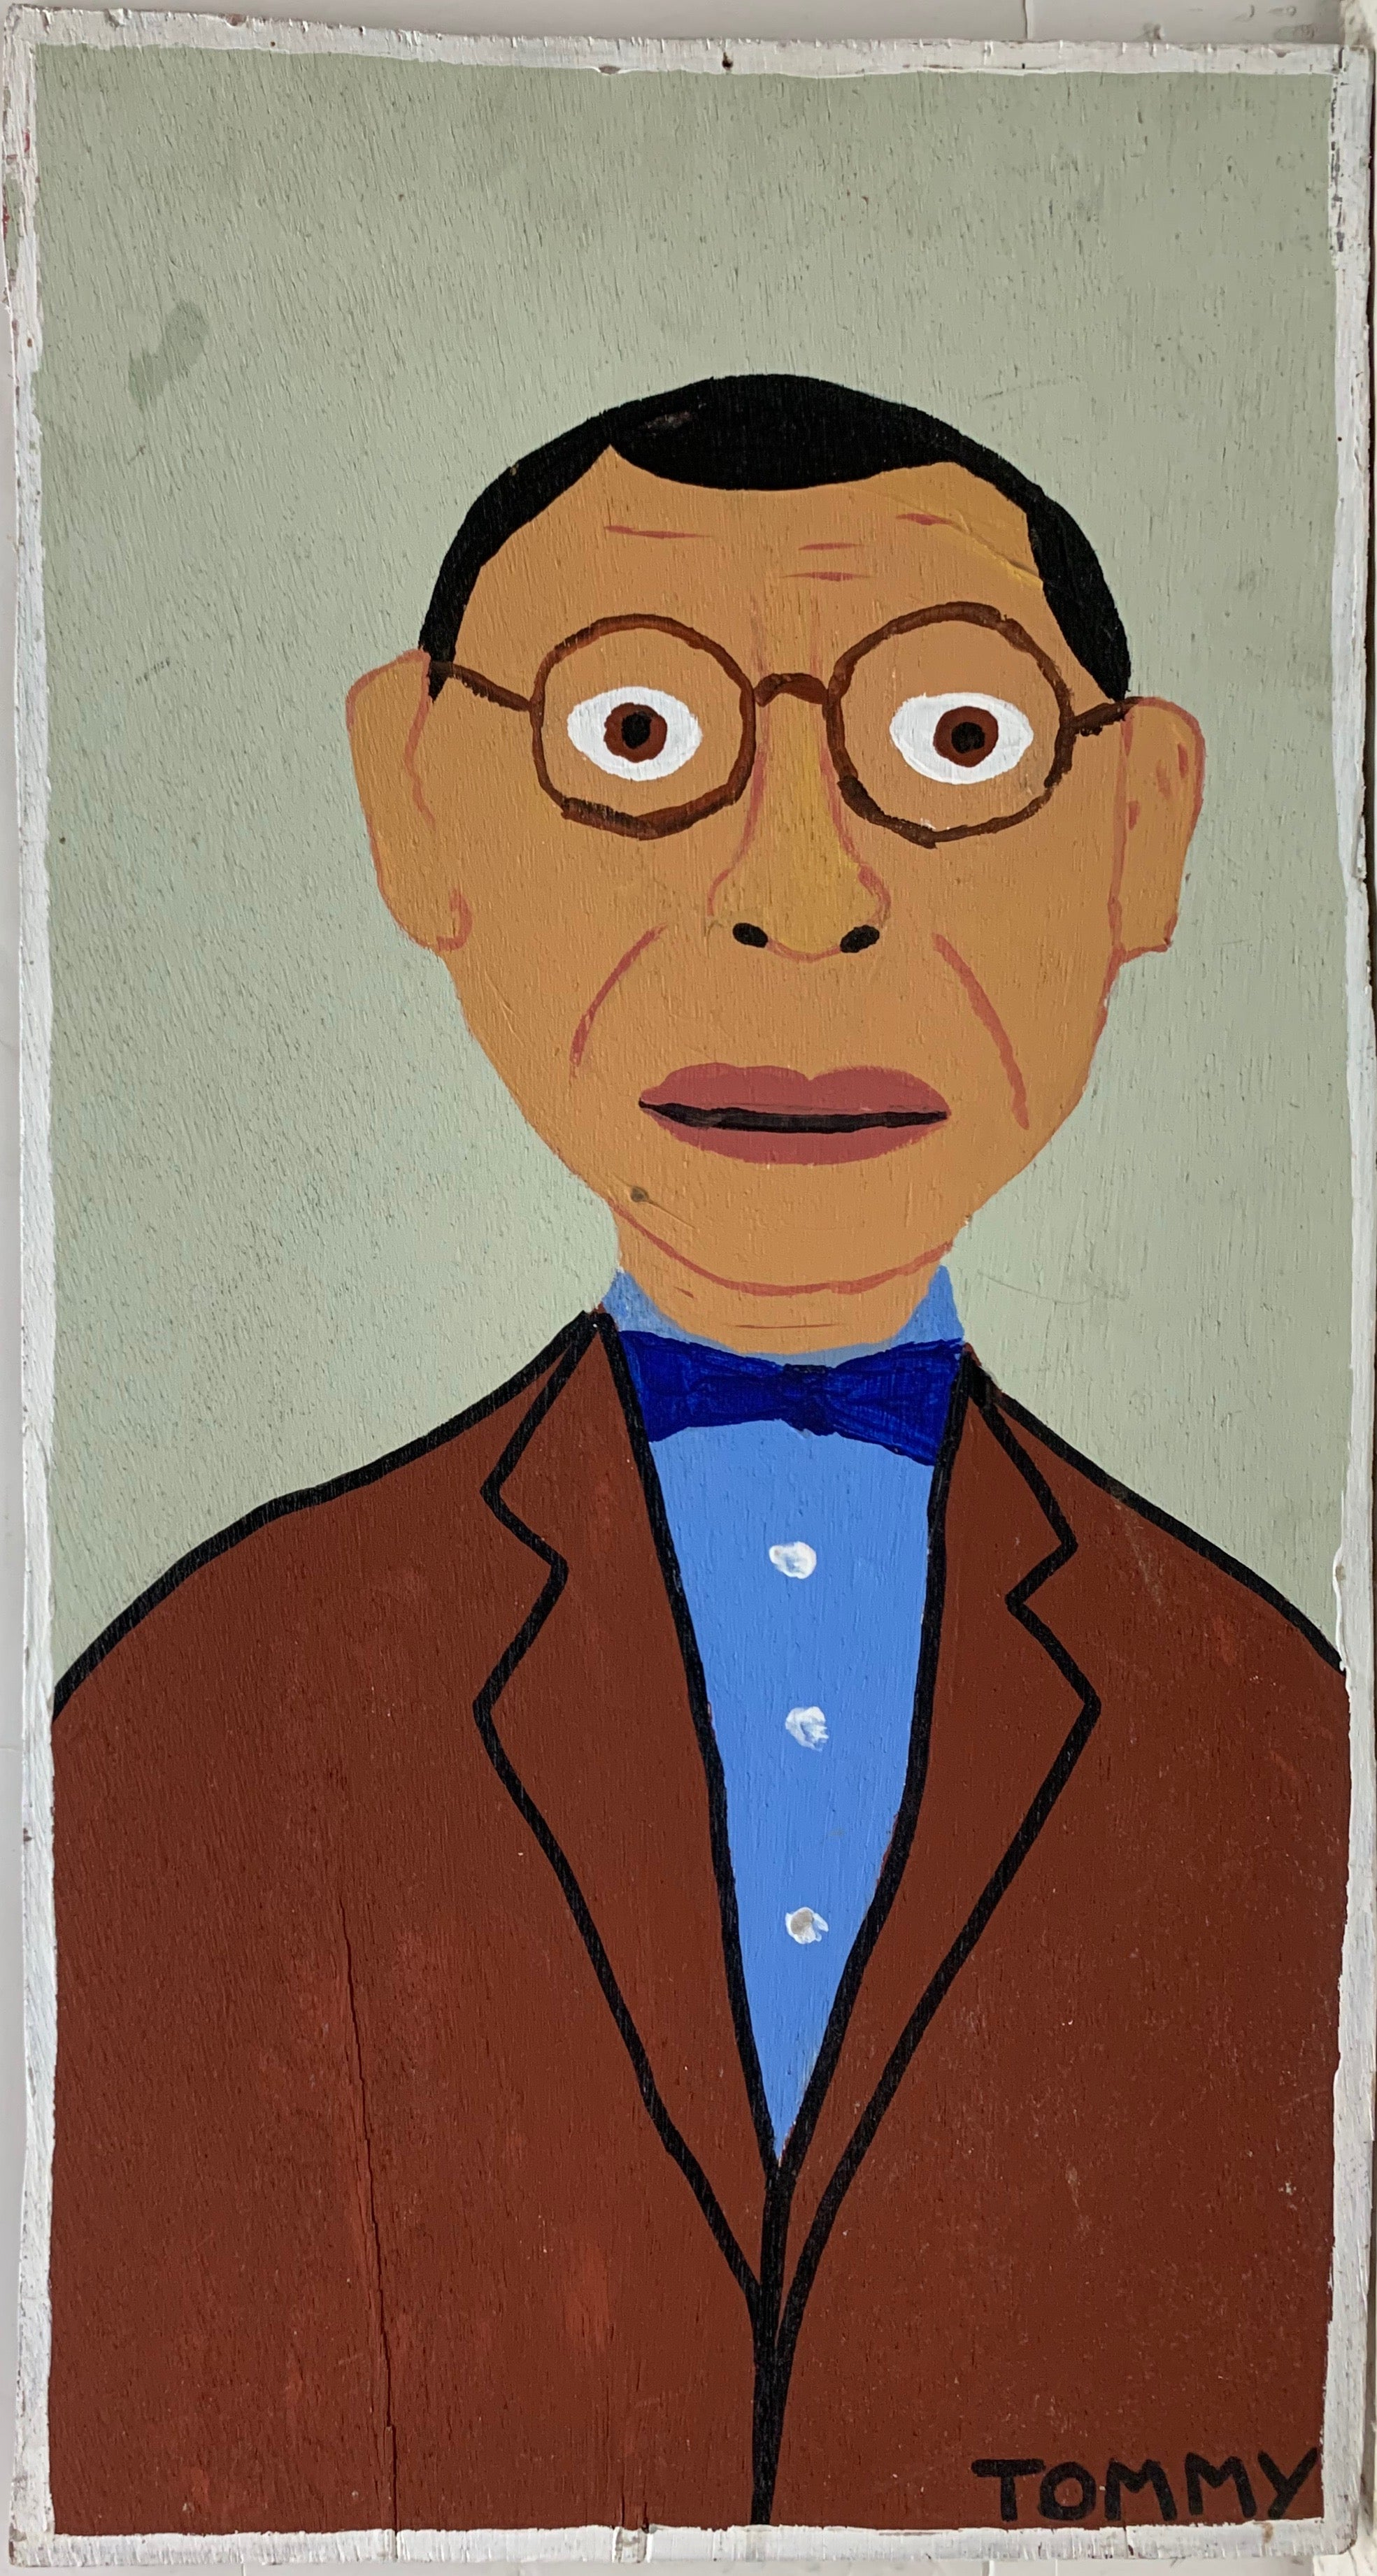 A Tommy Cheng portrait of a man with round glasses, a brown suit jacket, and a blue bow tie.